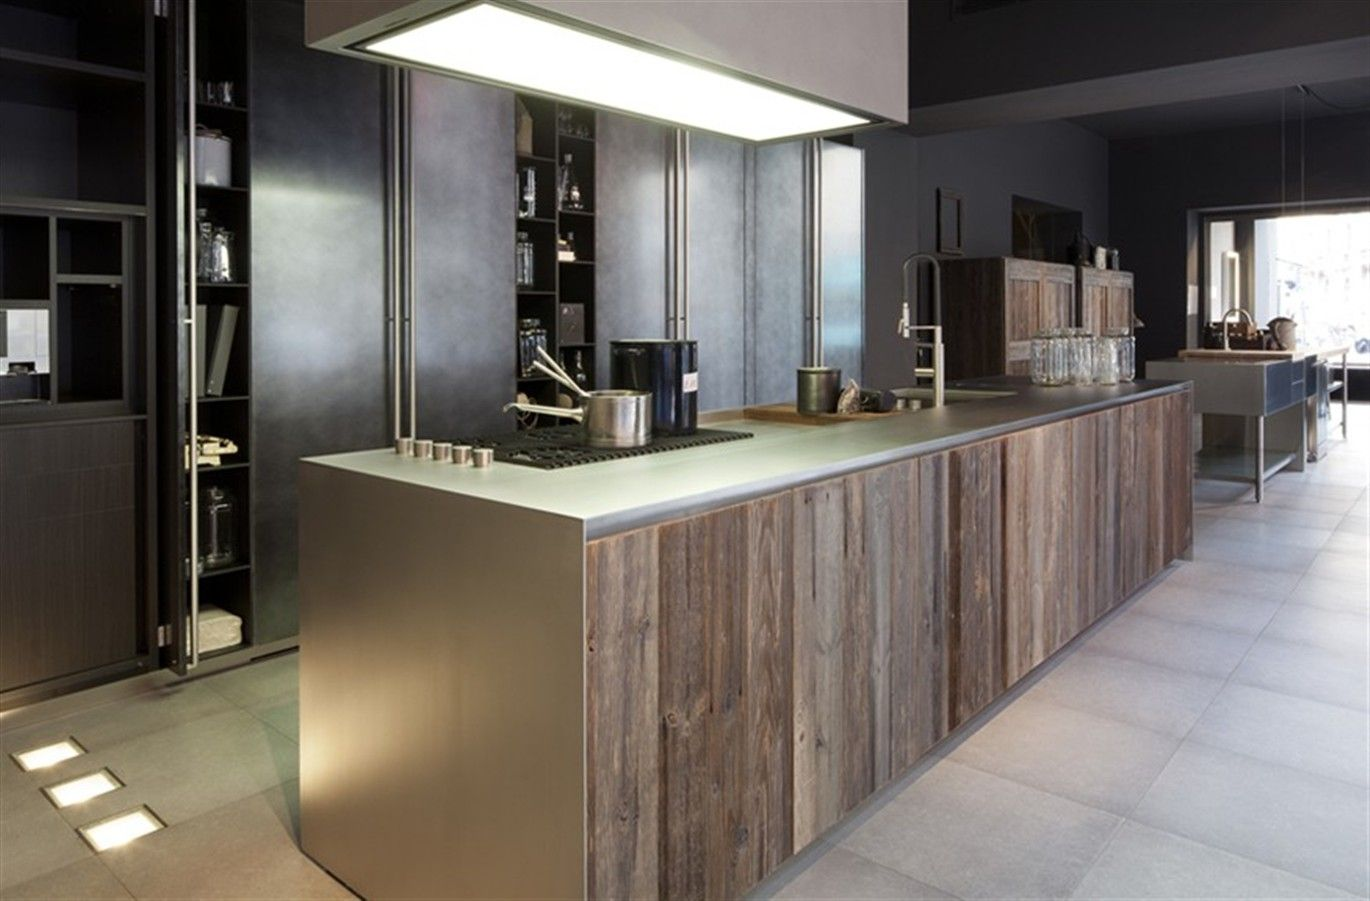 boffi cucine hide design by piero lissoni declub